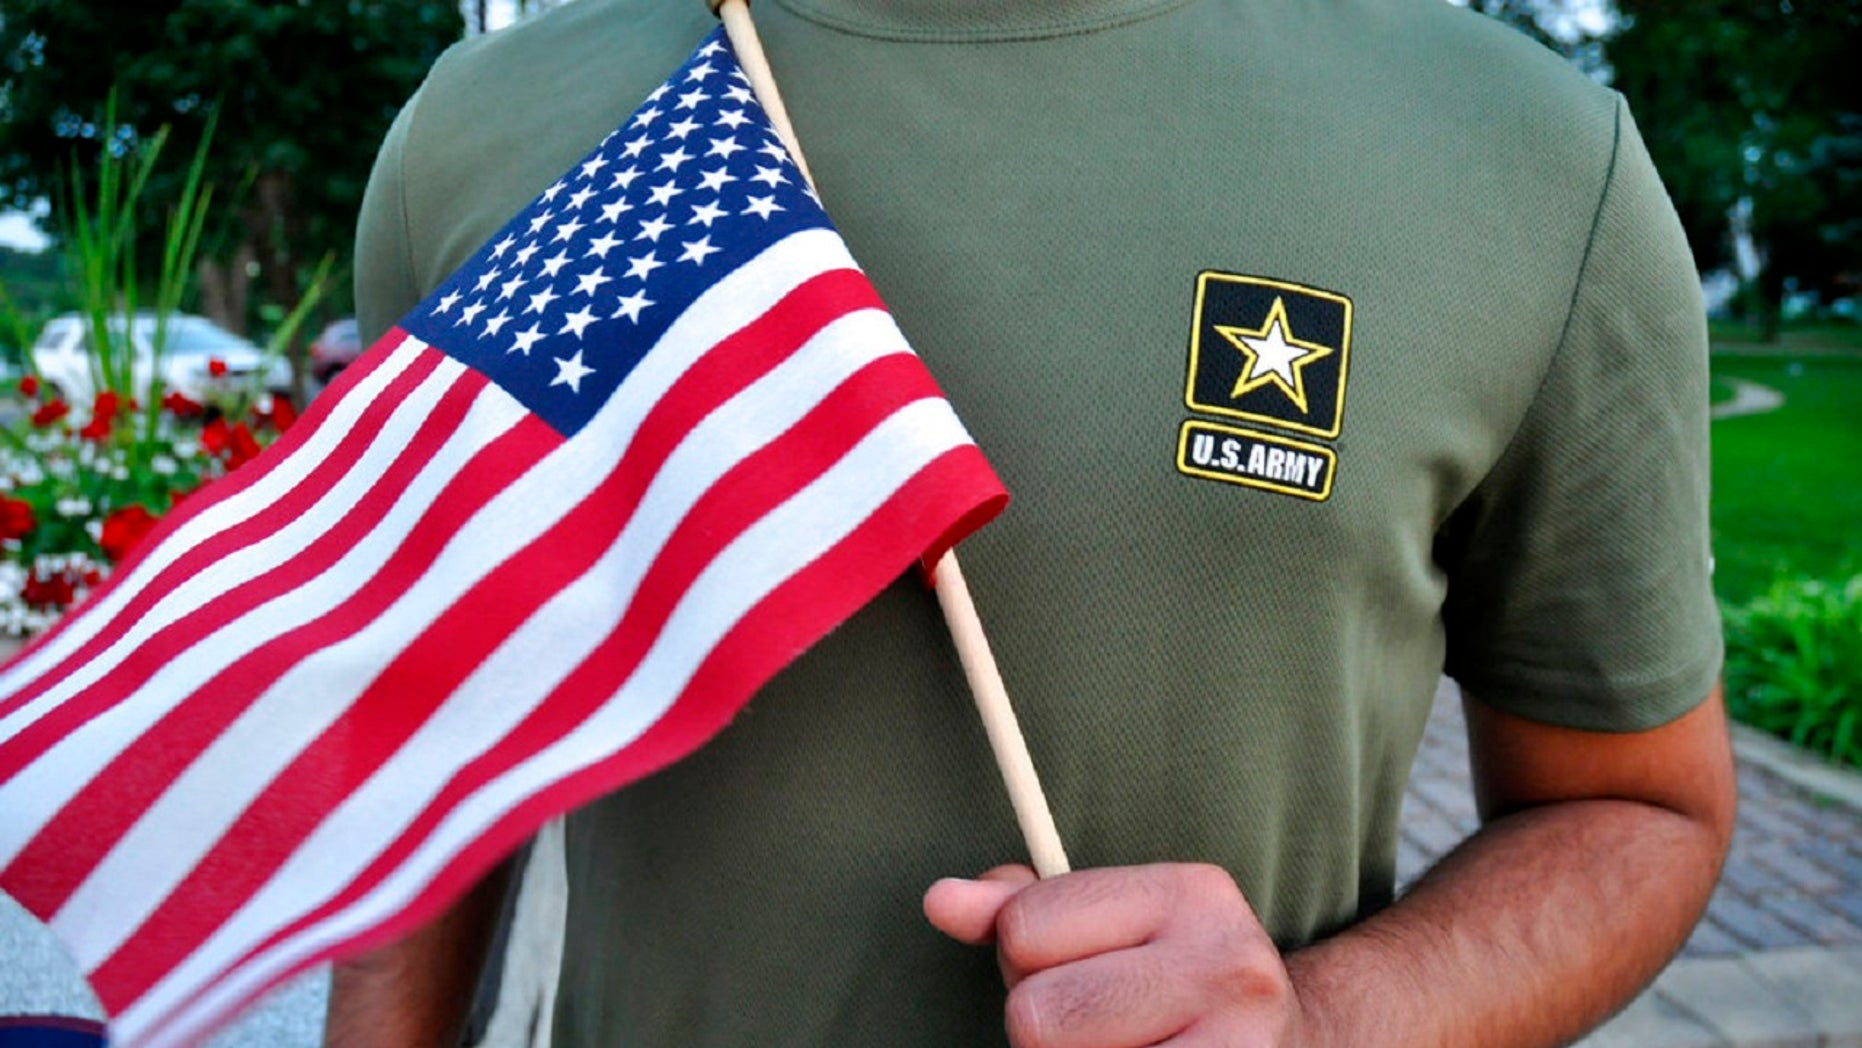 Some legal immigrants are reportedly being discharged from the U.S. Army, putting their legal status in jeopardy.